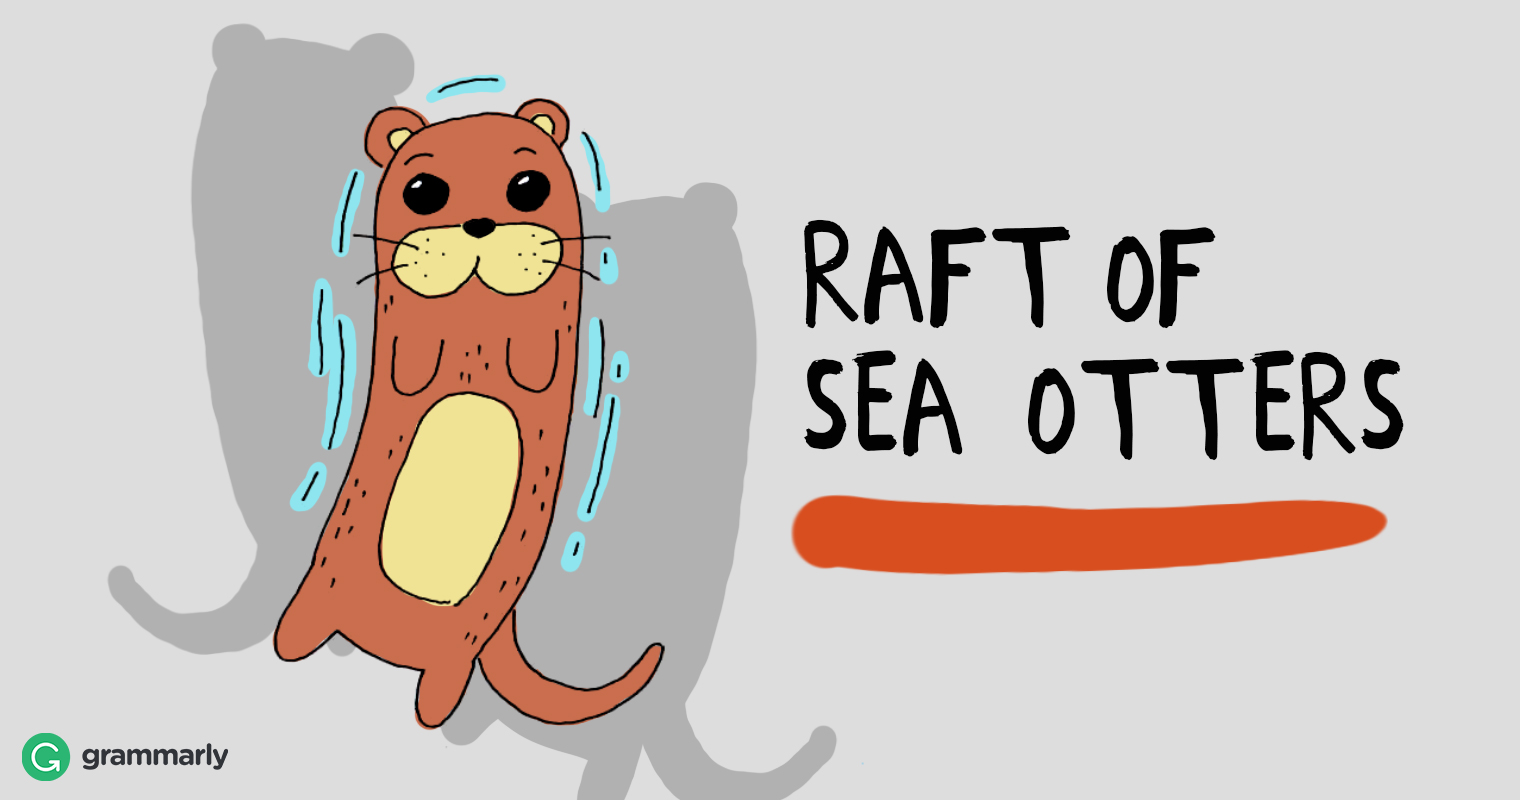 Collective of sea otters is a raft.